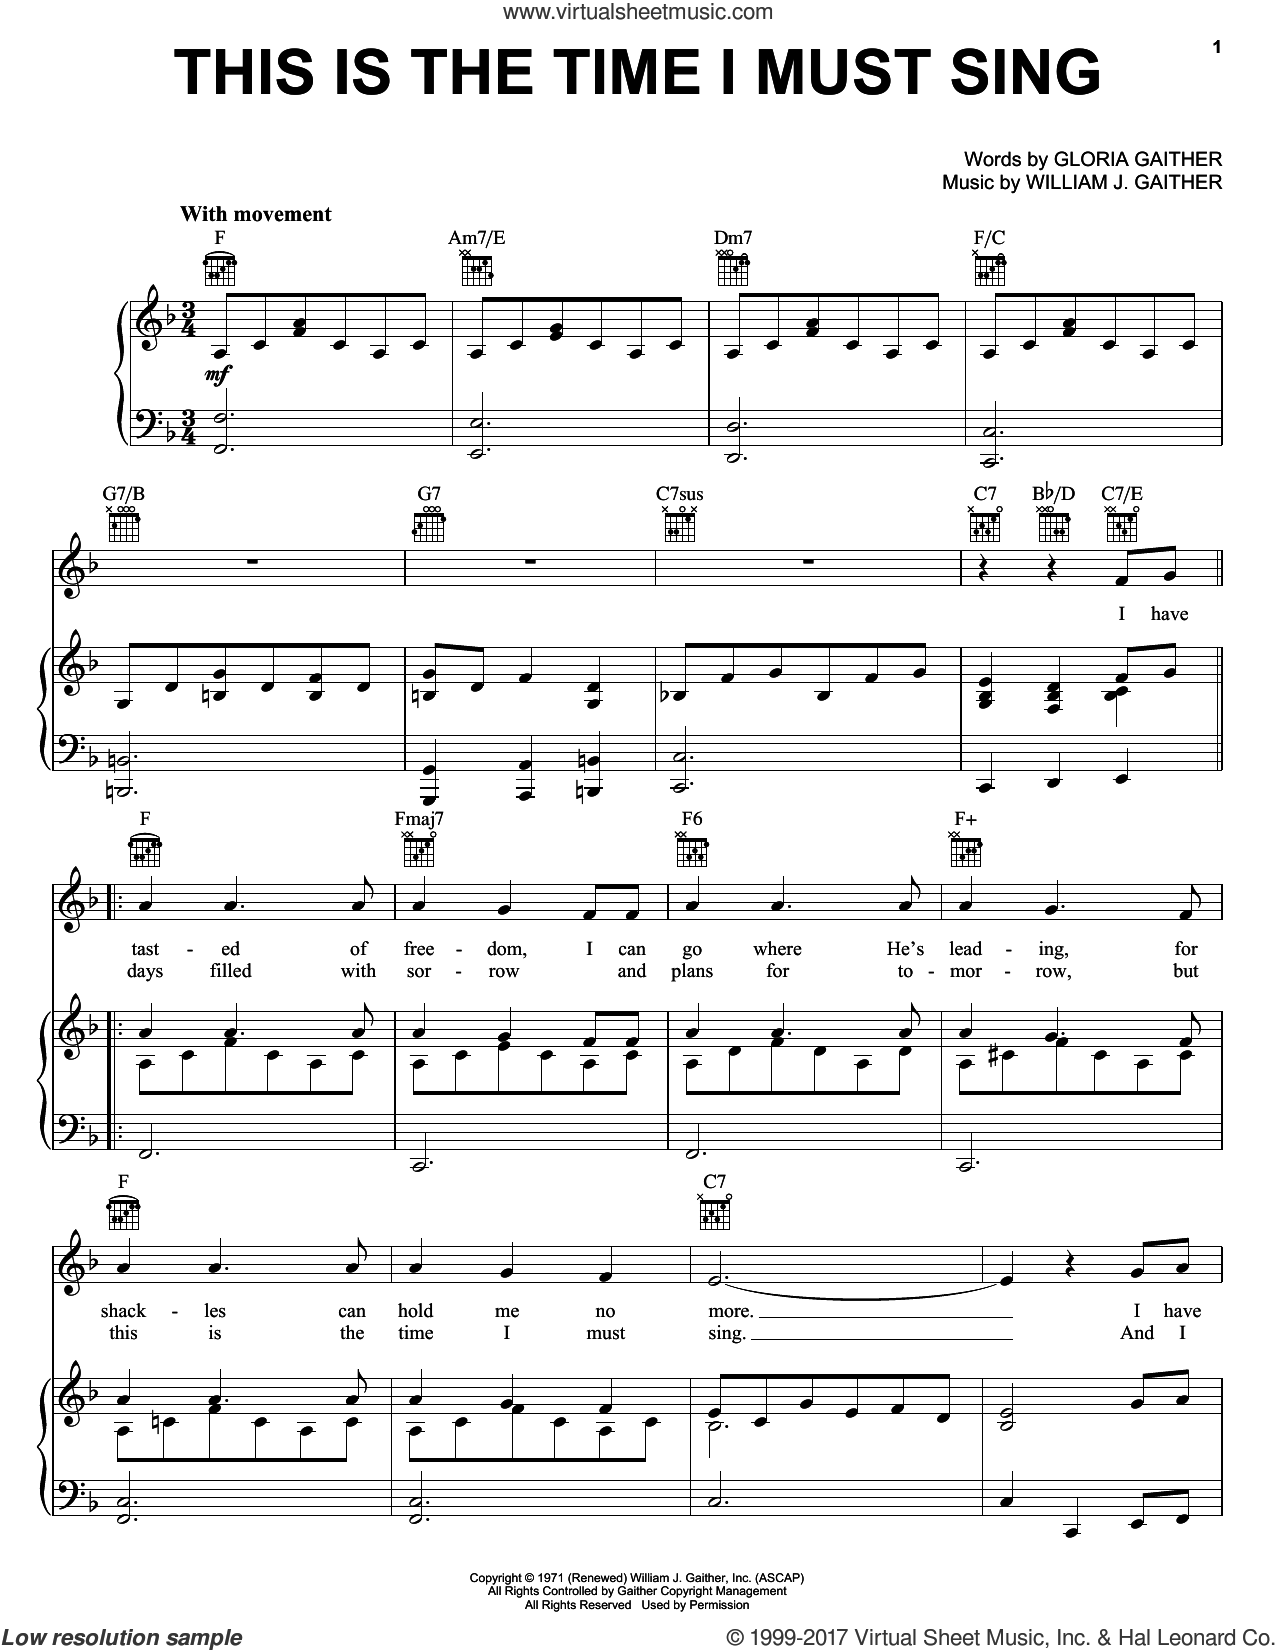 This Is The Time I Must Sing sheet music for voice, piano or guitar by Bill & Gloria Gaither, Bill Gaither, Gloria Gaither and William J. Gaither, intermediate skill level